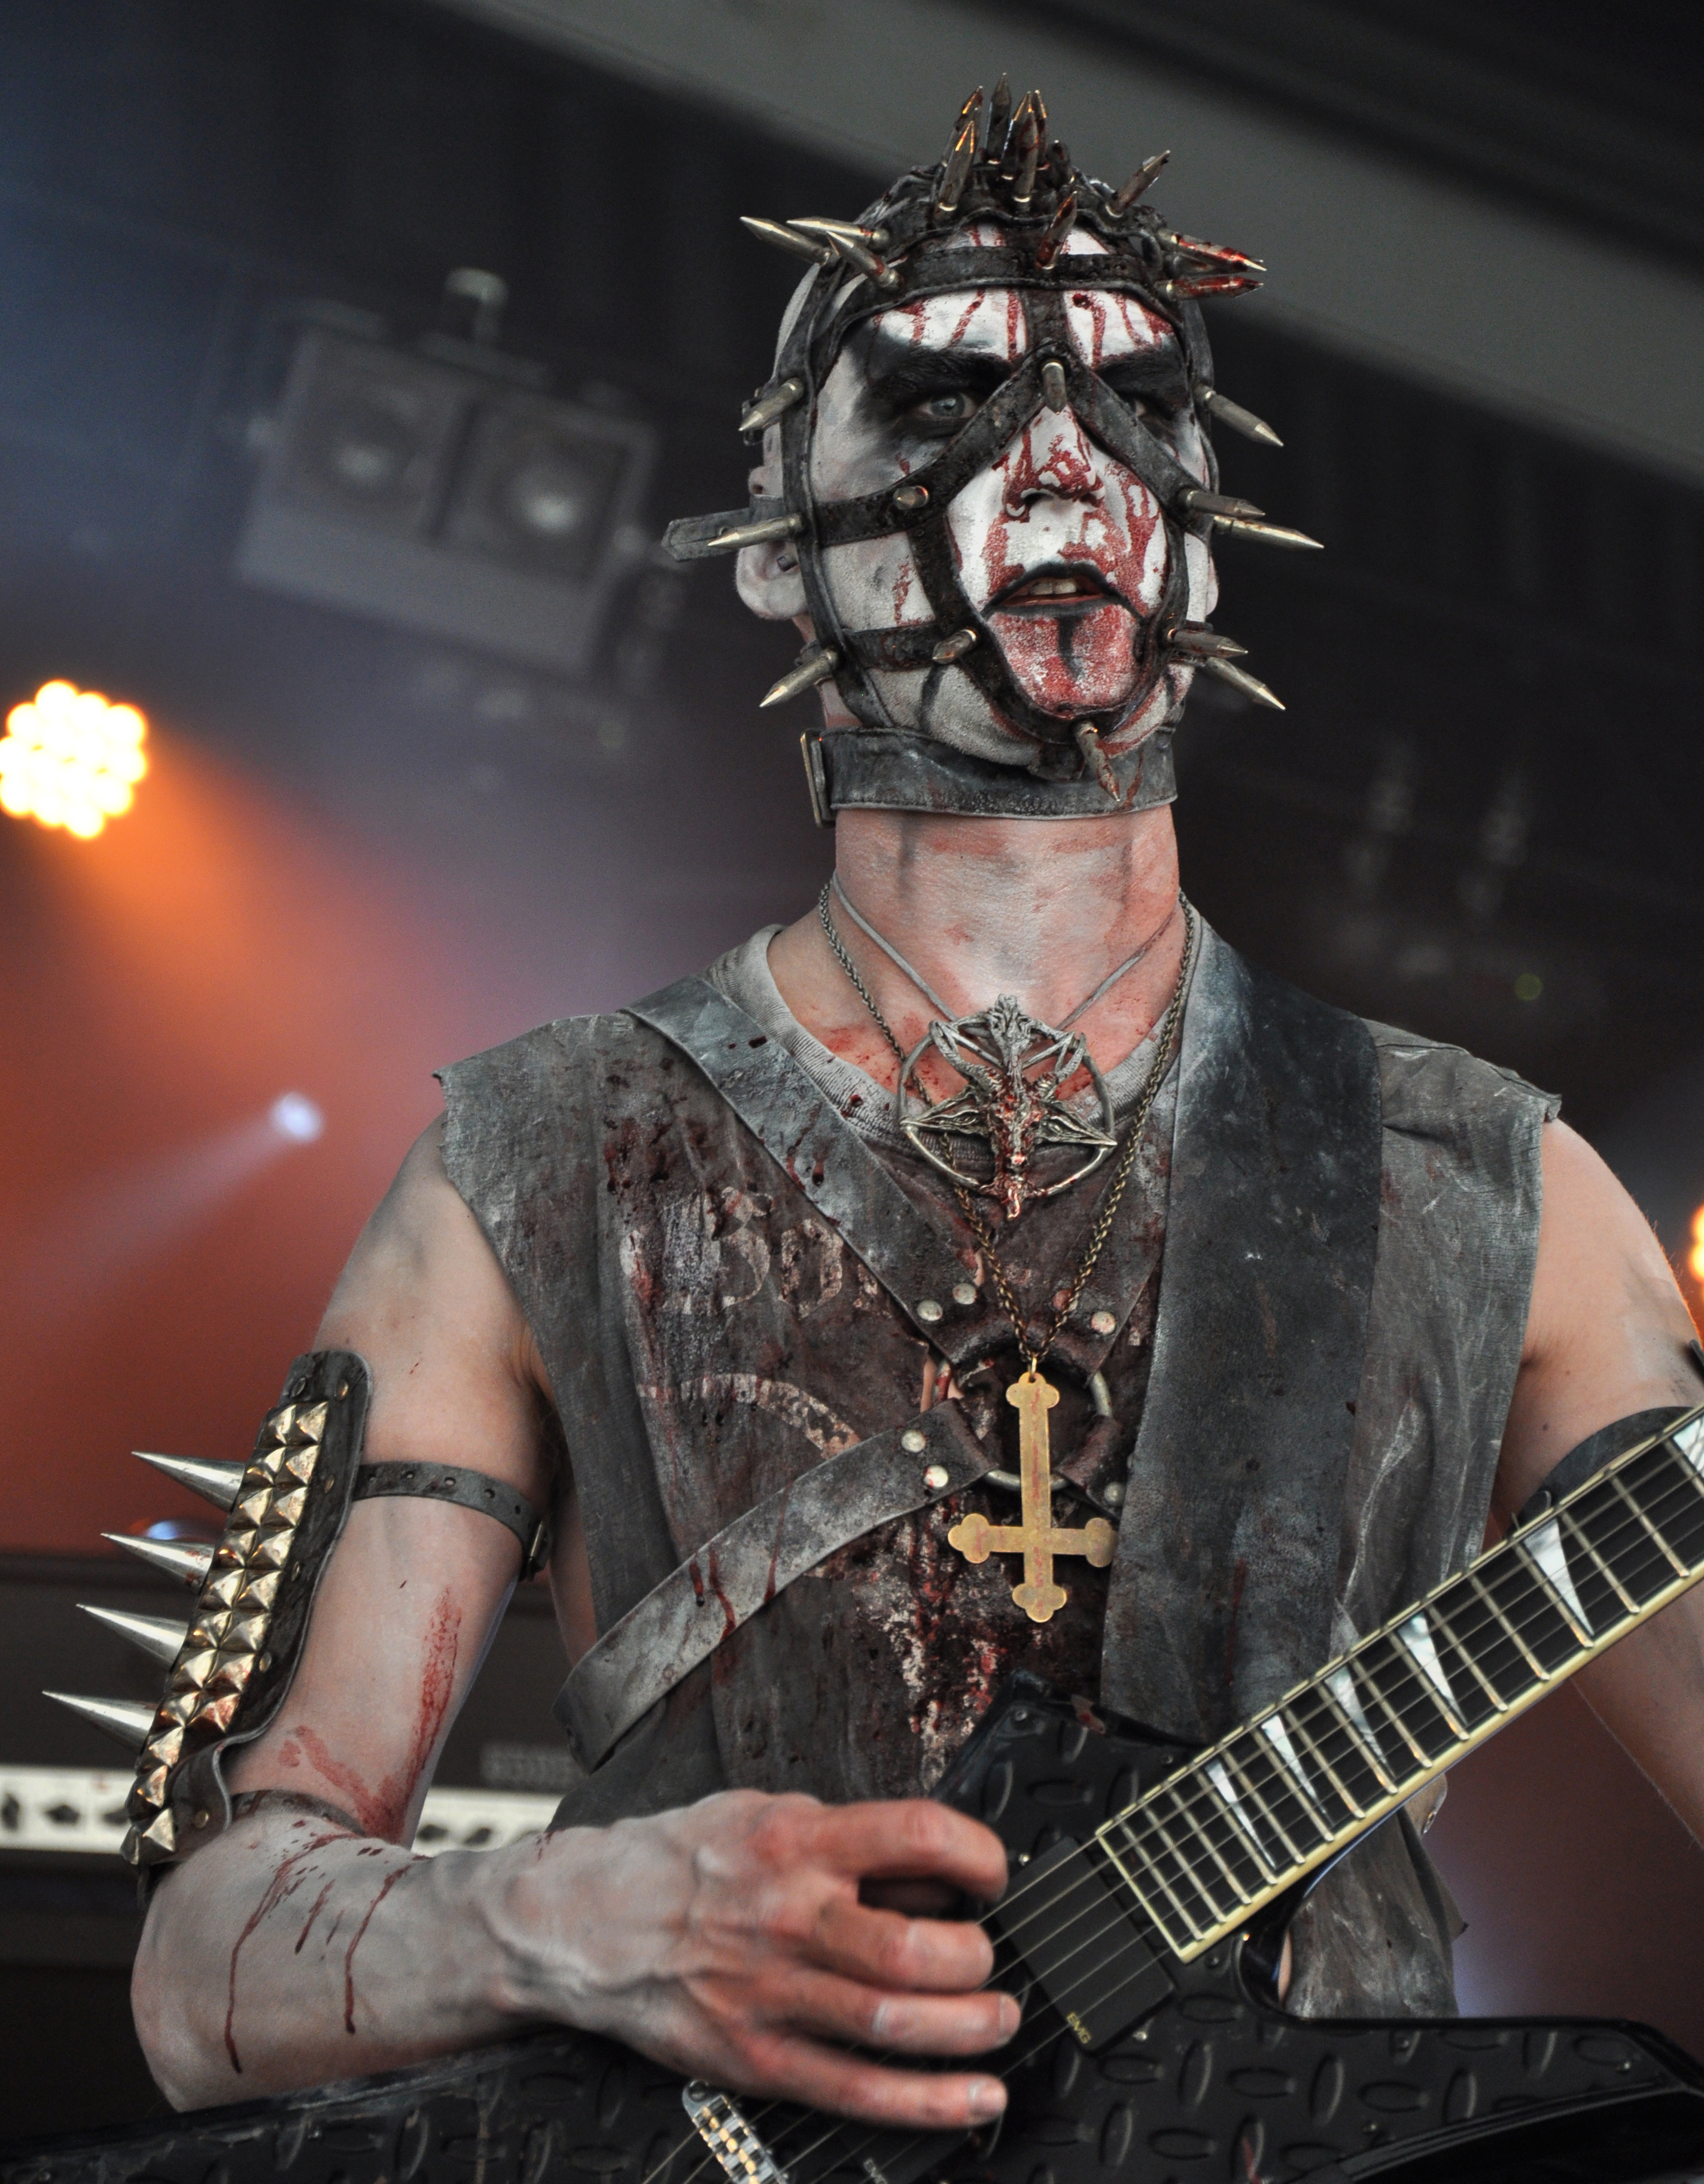 Metal Bands That Paint Their Faces